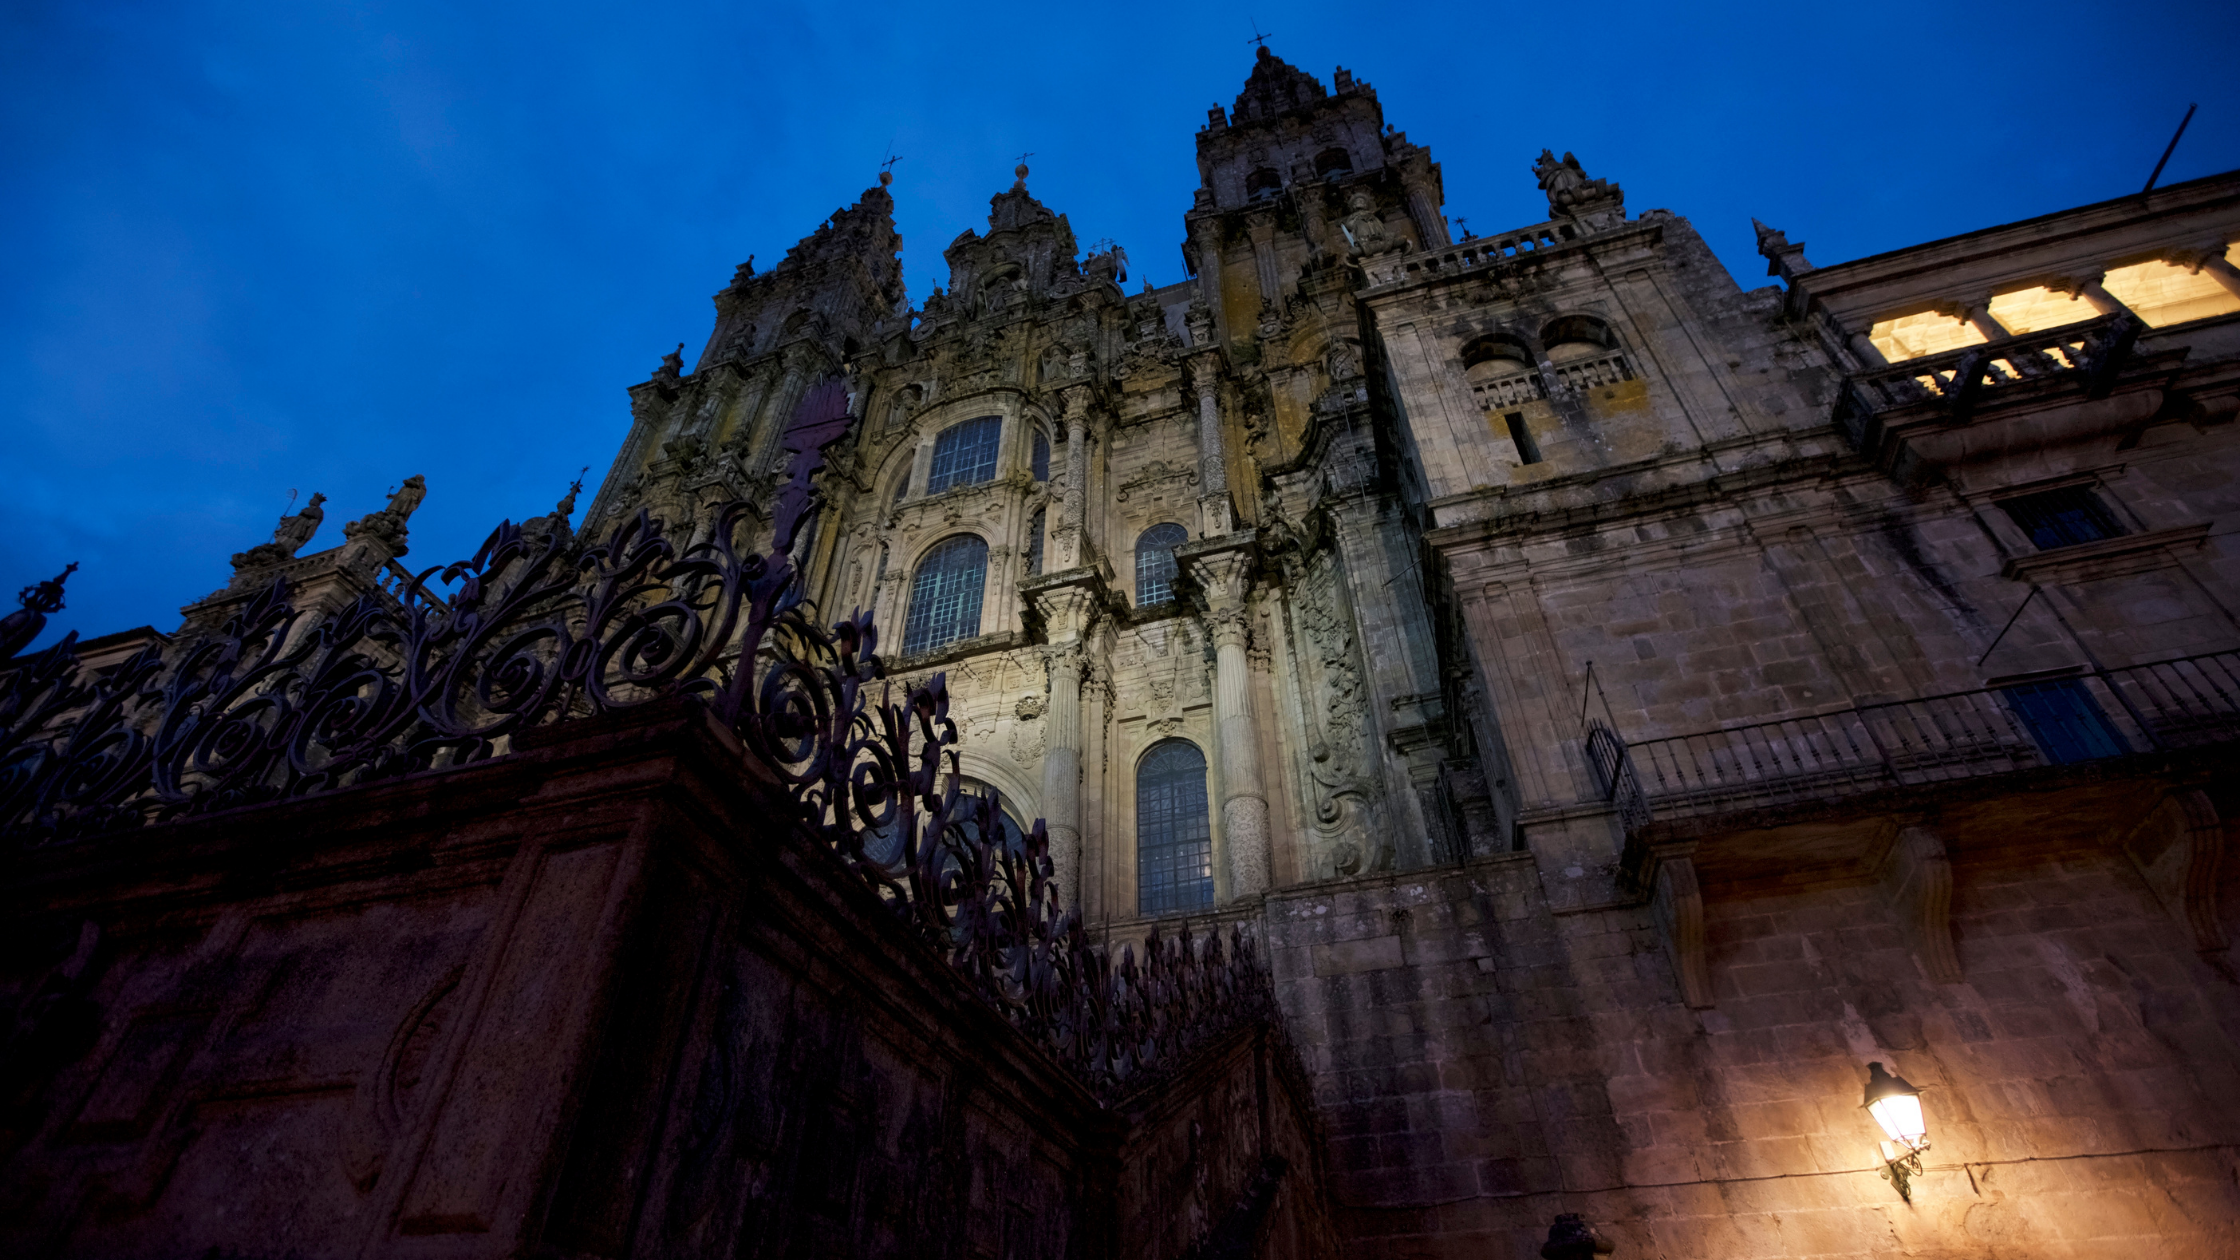 How I discovered the Feast of St. James in Santiago de Compostela